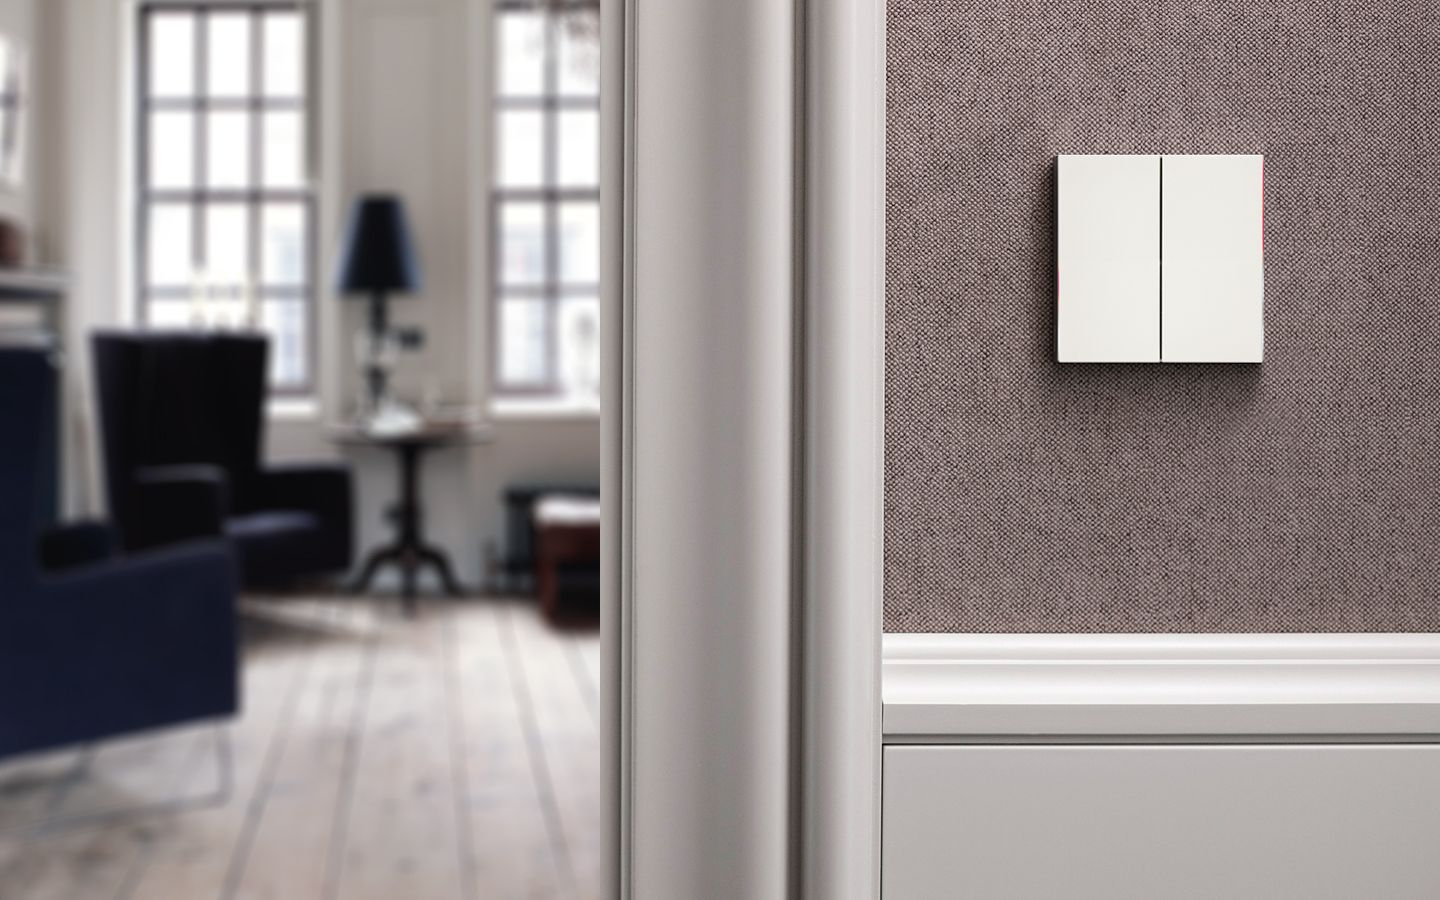 Comfort and energy management by the KNX system